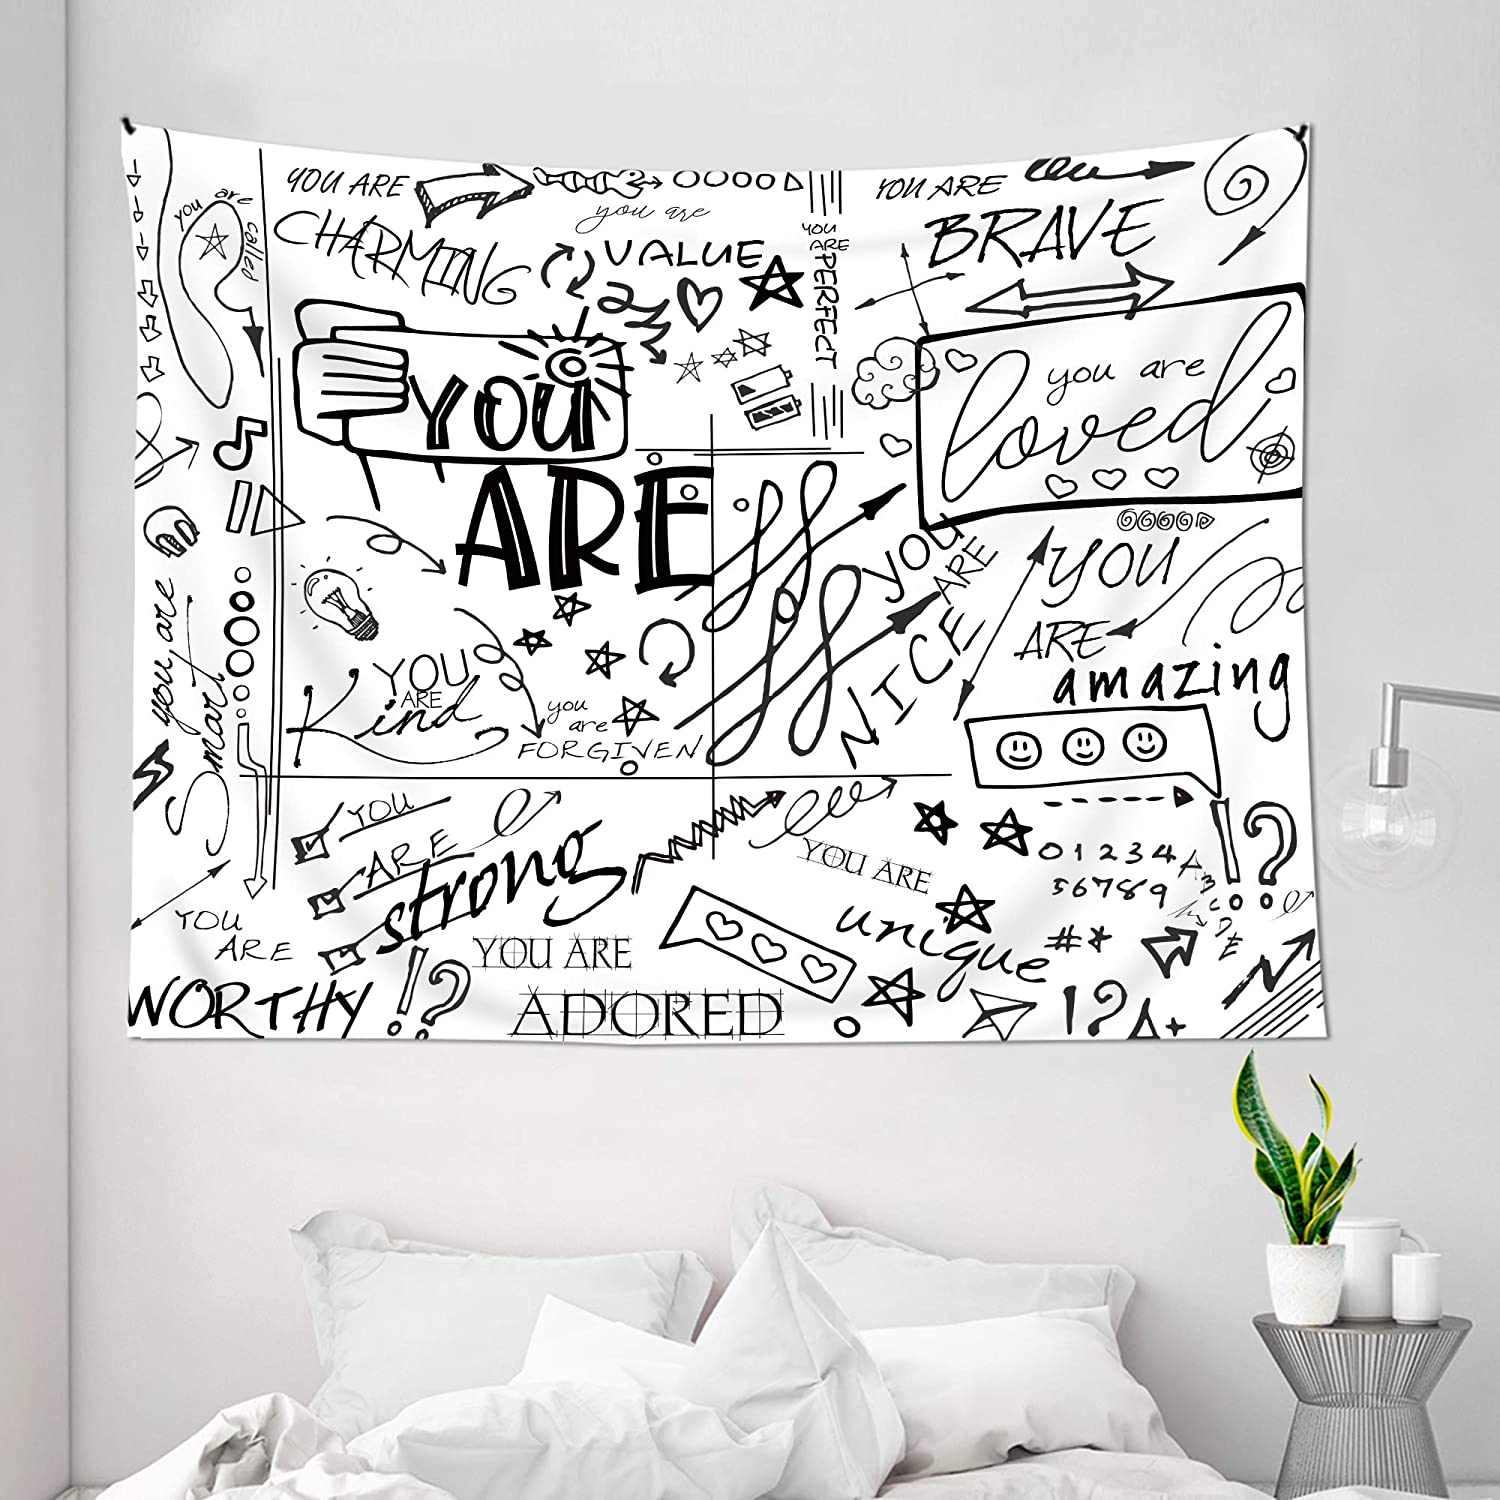 Ambsunny Quote You Are Tapestry 51Hx59W Letter Wall Art Positive Saying Vintage Art Wall Hanging Bedroom Living Room Dorm Decor Fabric Black White